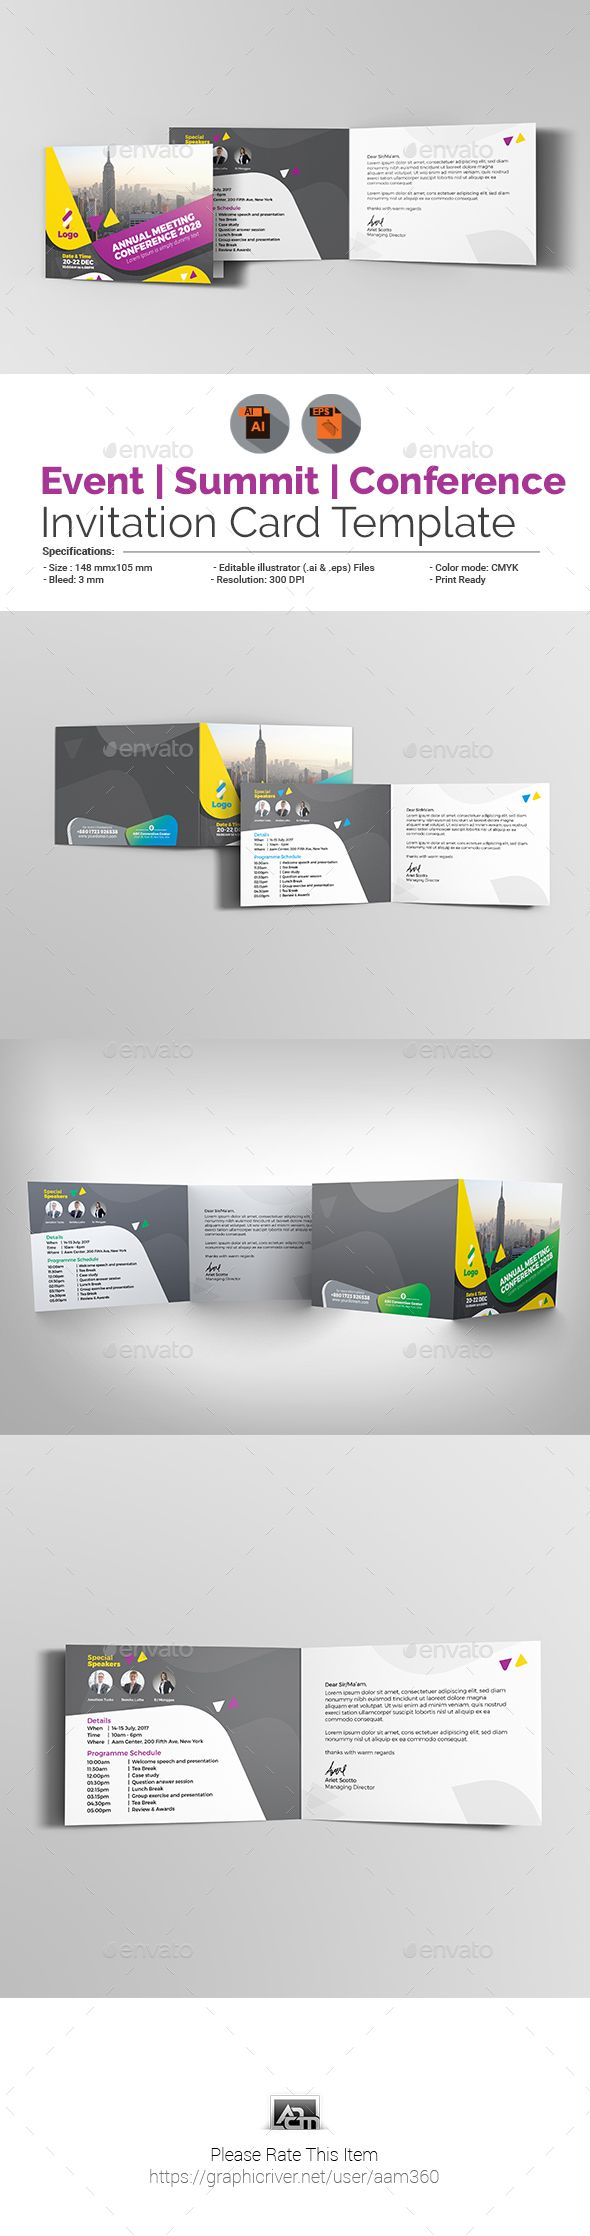 Event Summit Conference Invitation Card Template Vector